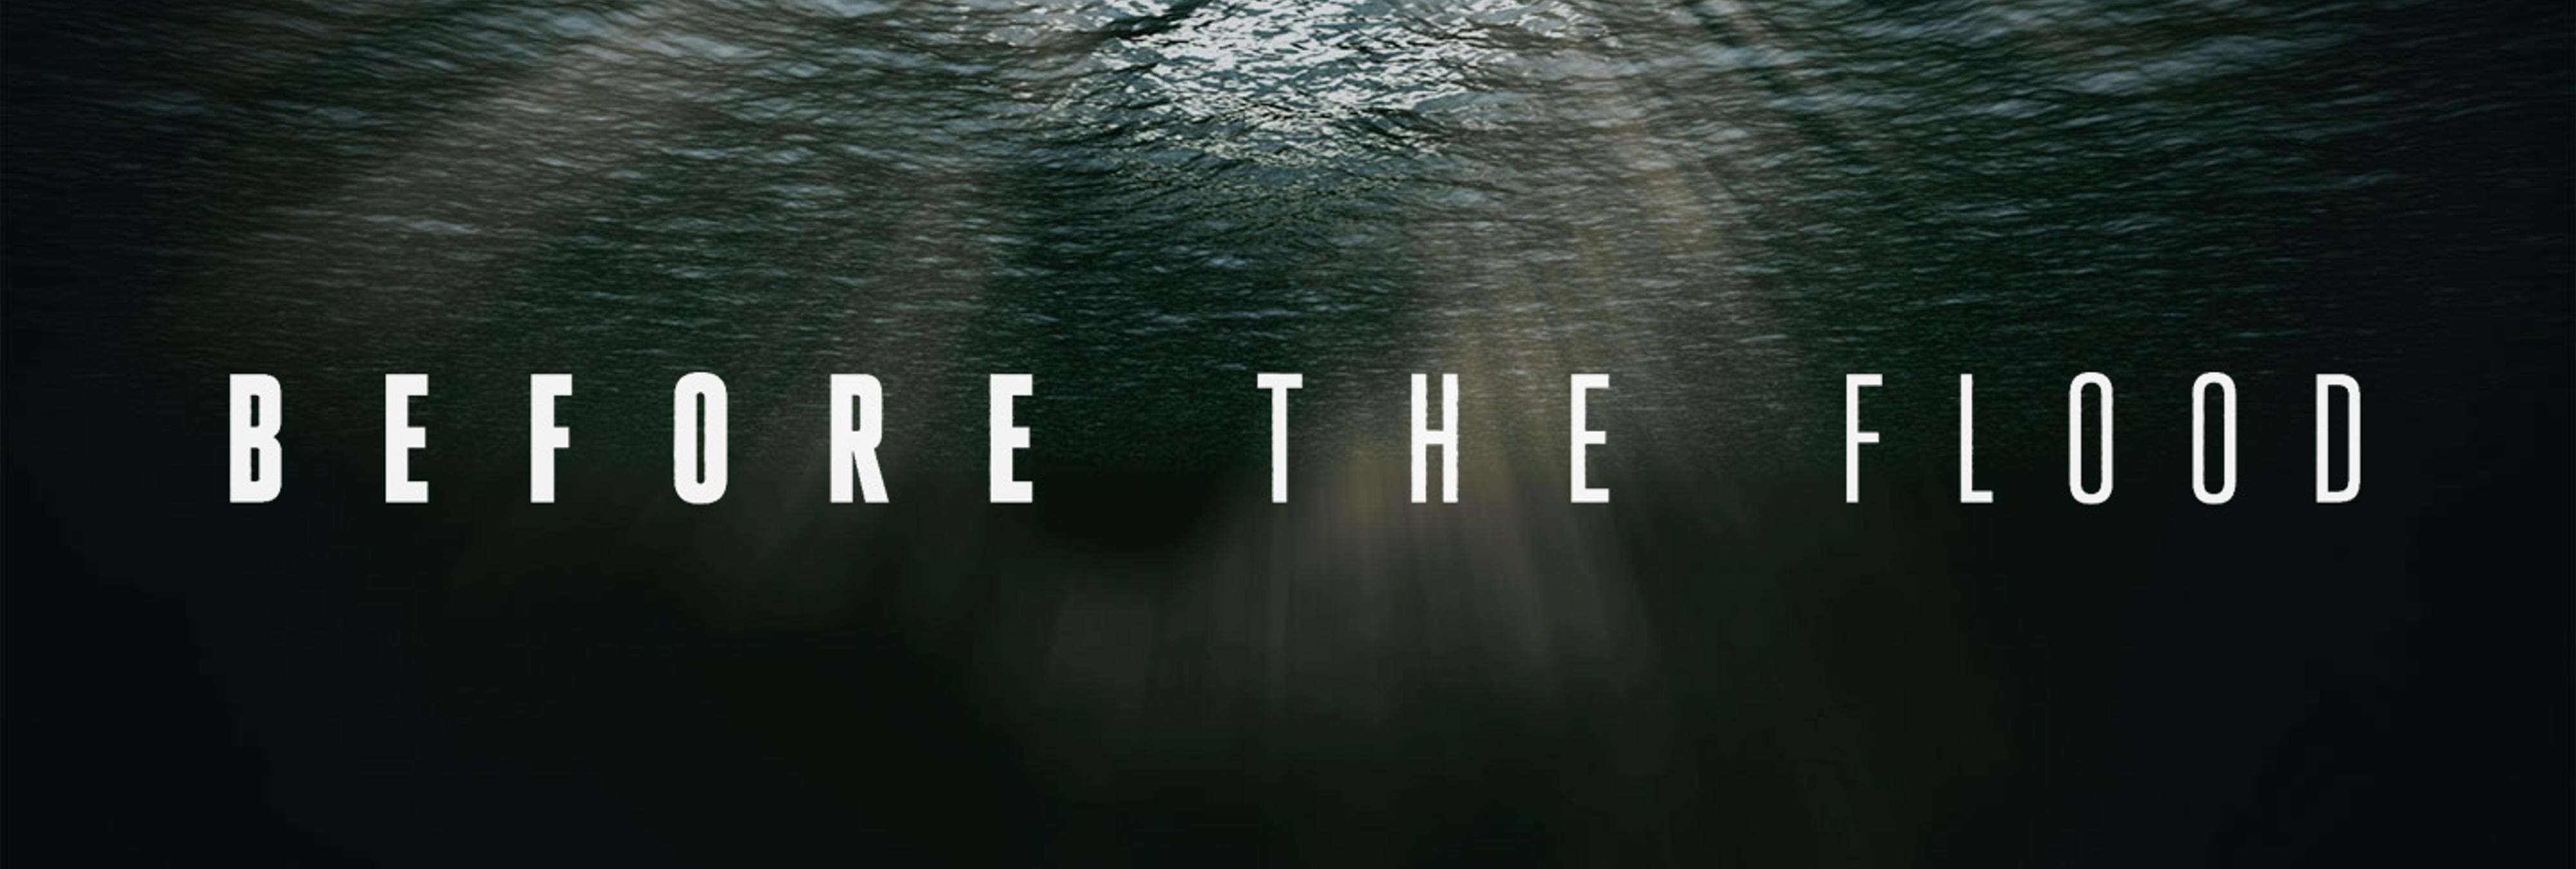 'Before the flood': El documental sobre el cambio climático de Leonardo DiCaprio